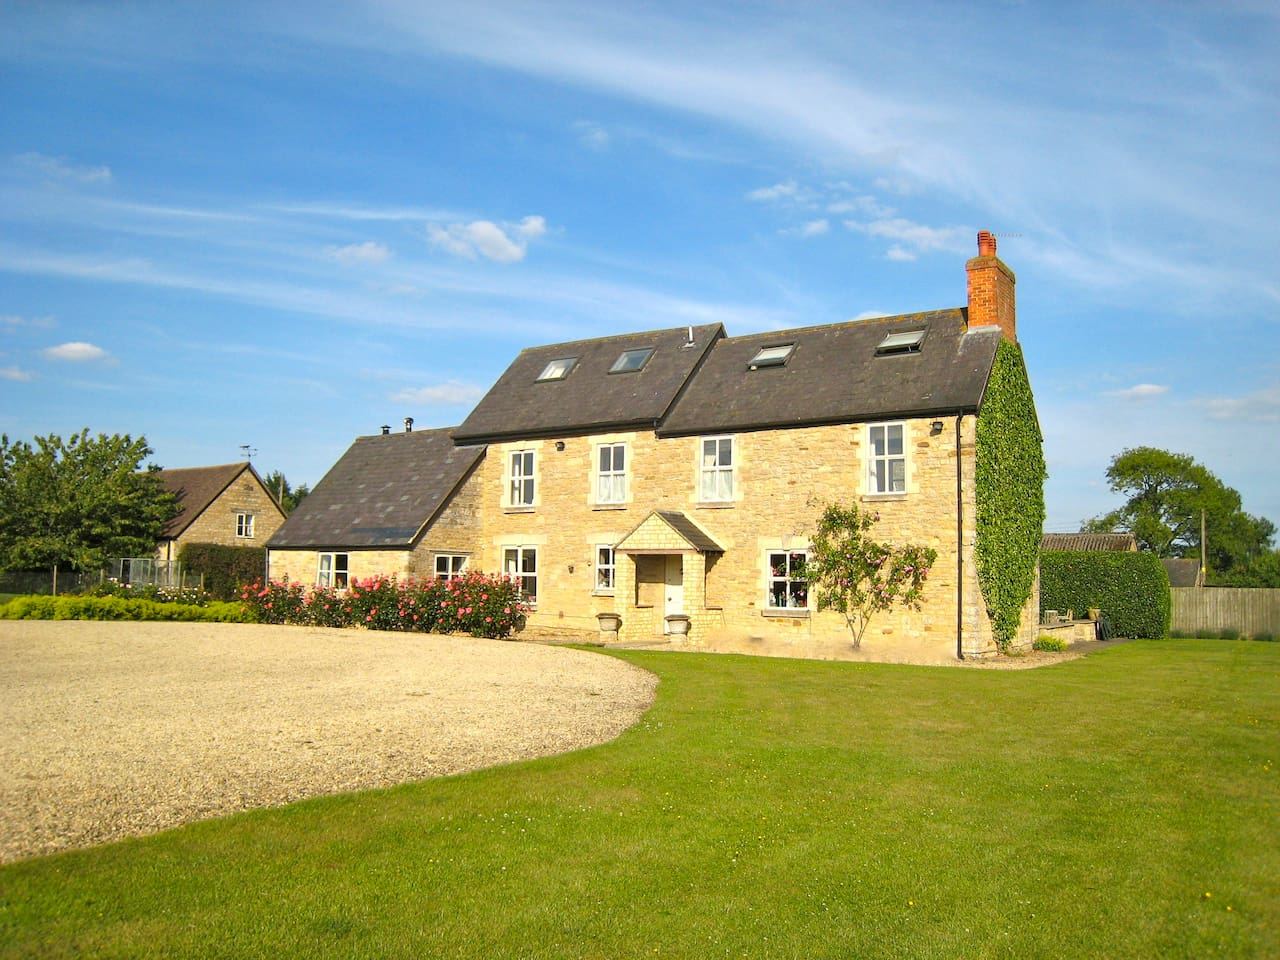 Lovely farmhouse with spectacular views over open countryside.